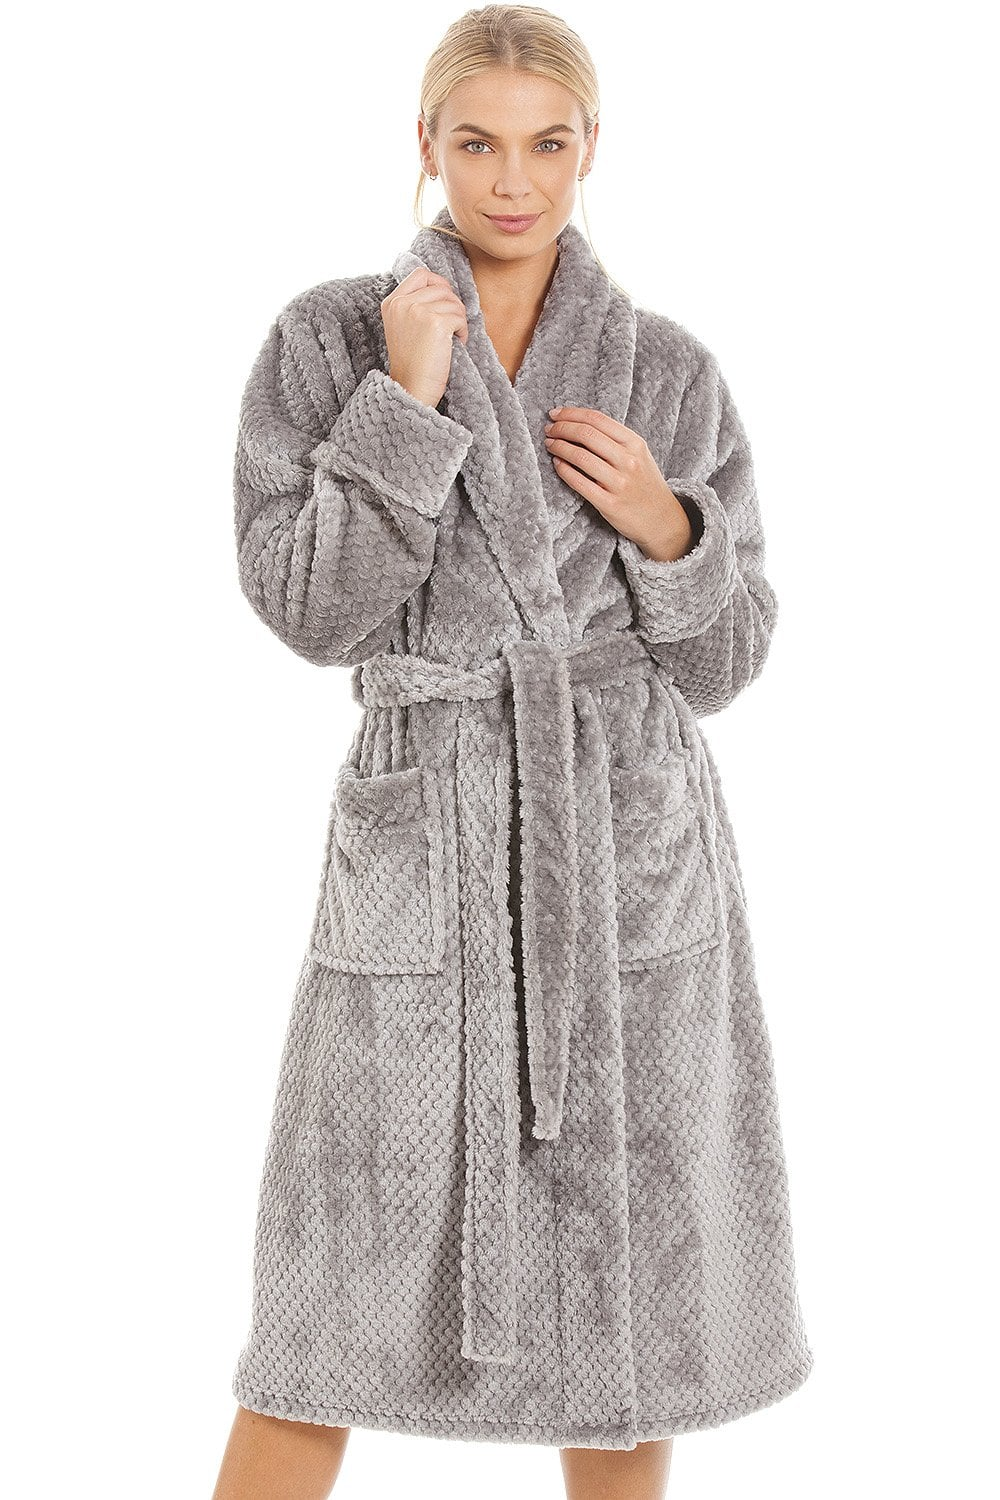 Luxury Dressing Gowns, Women's Onesies, Satin Nightdresses, Women's Nightwear